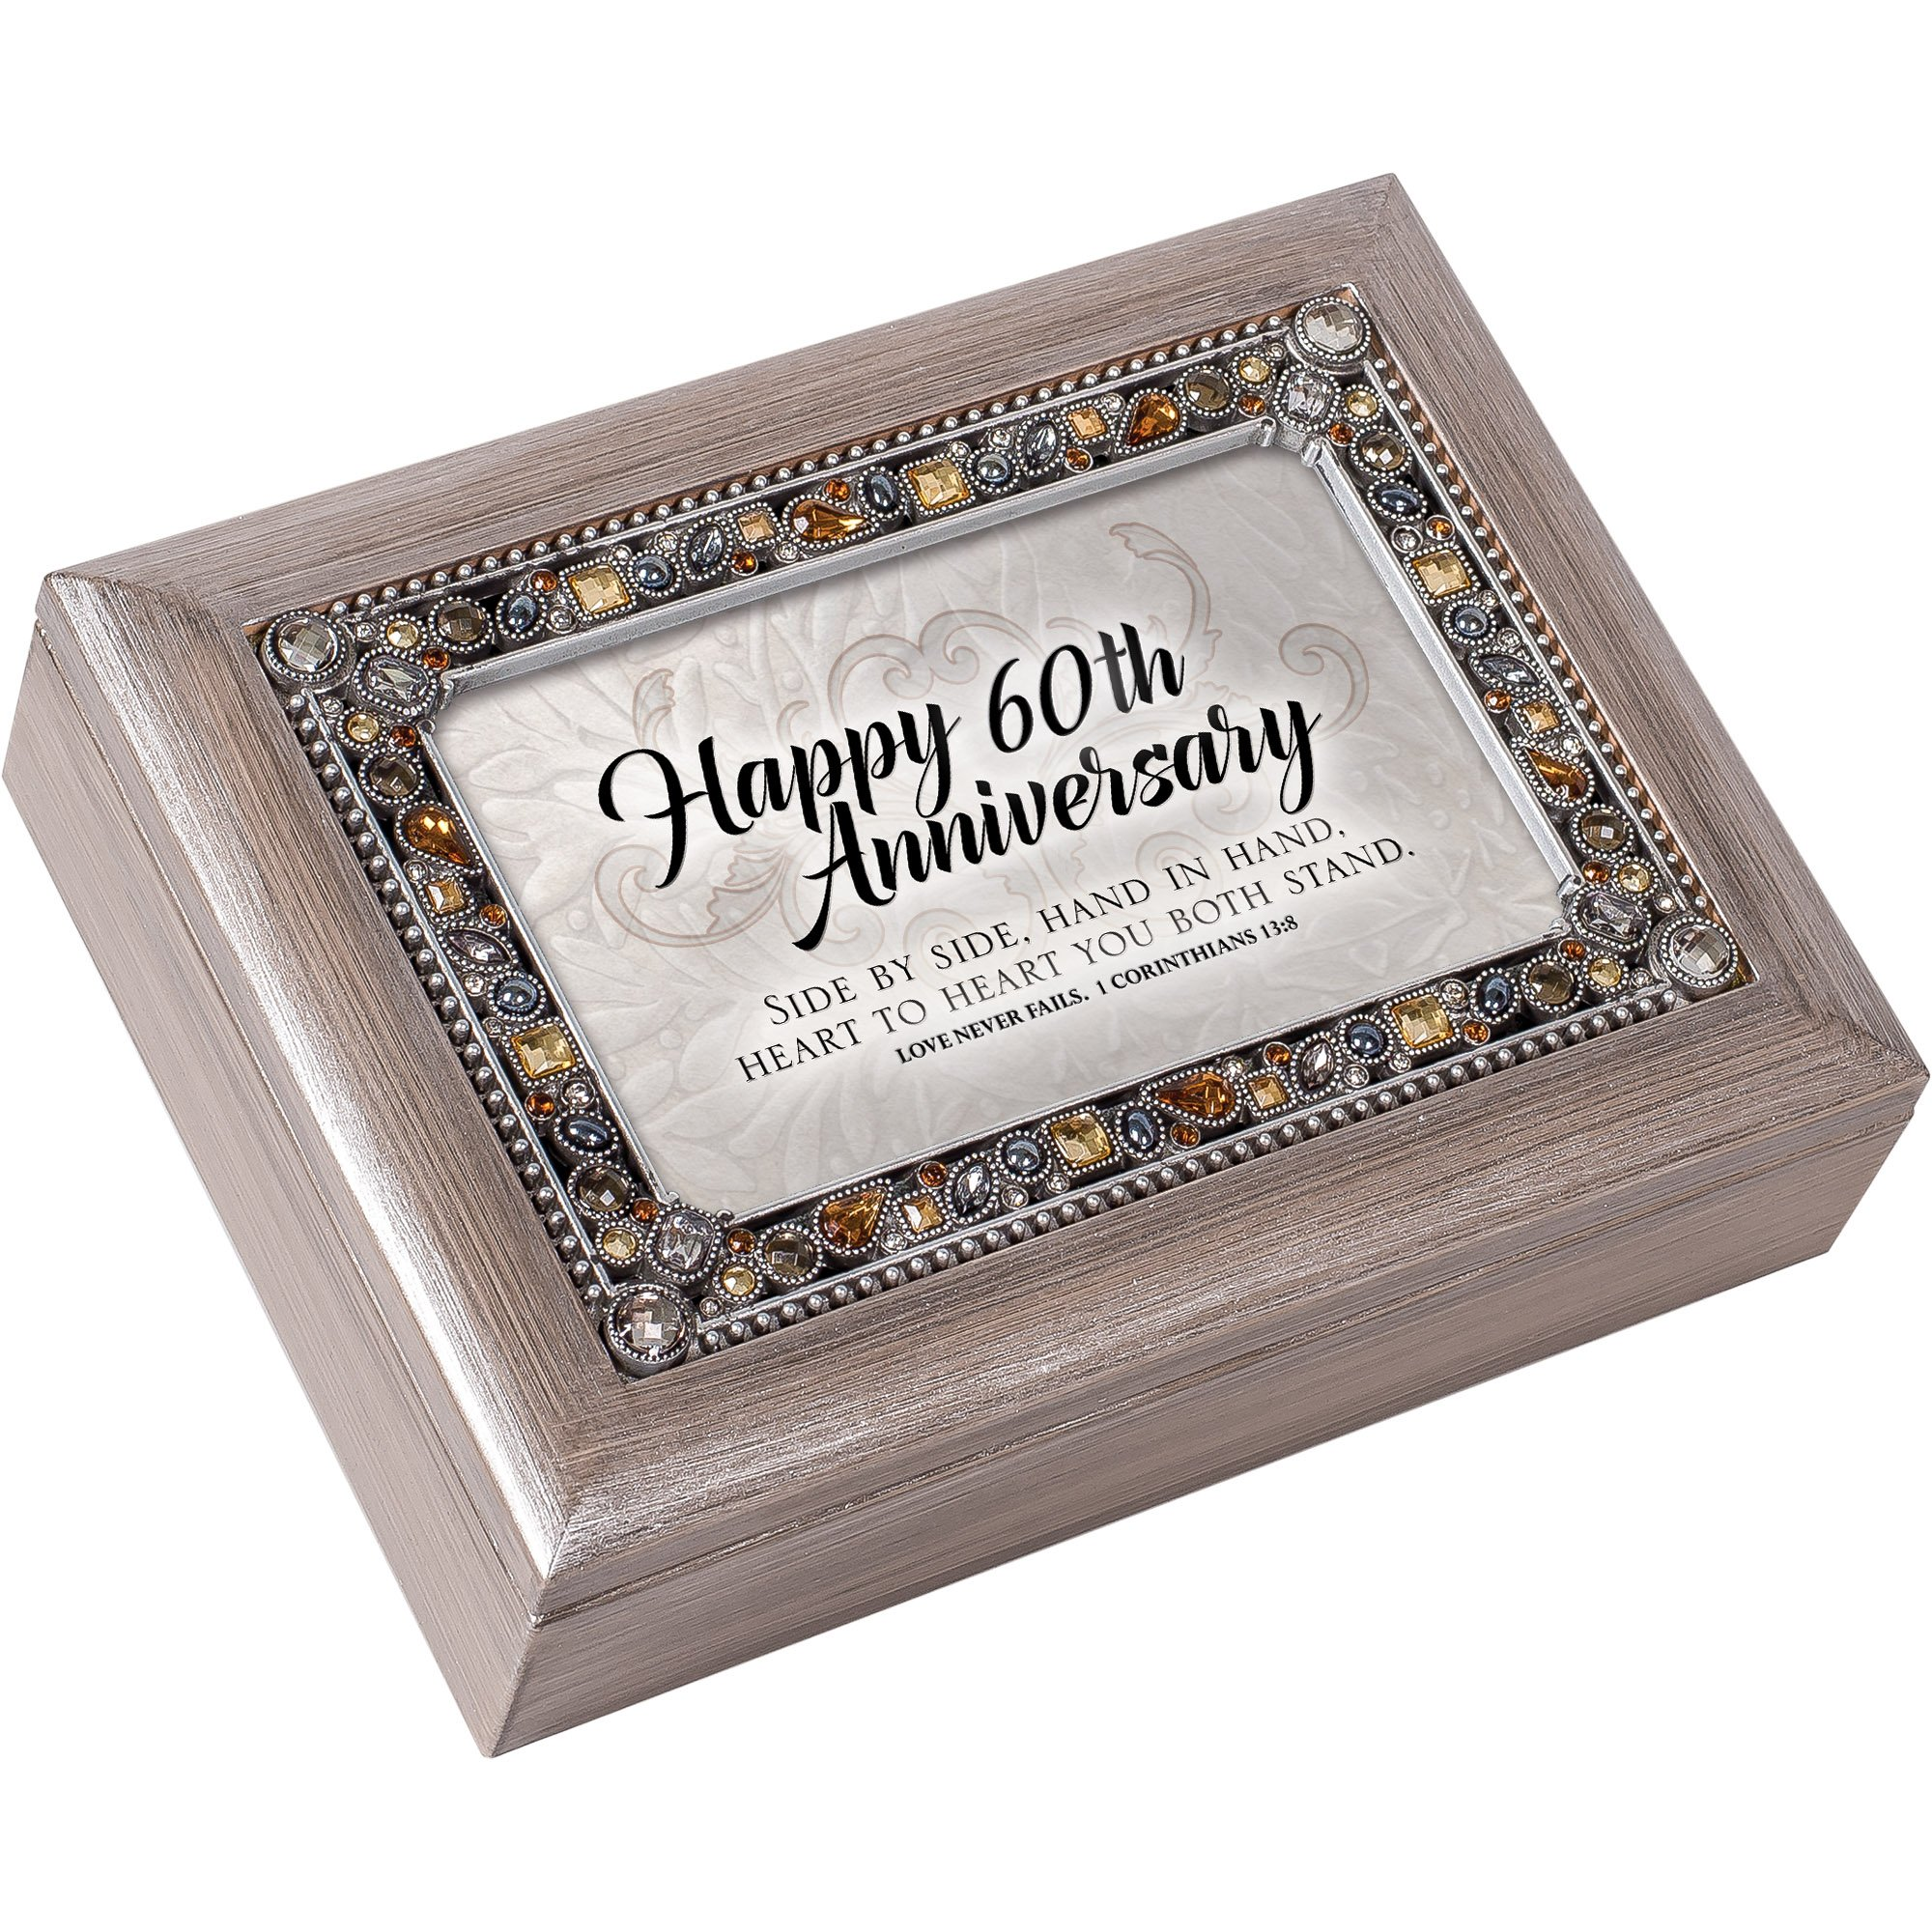 Cottage Garden Happy 60th Anniversary Brushed Pewter Jewelry Music Box Plays Amazing Grace